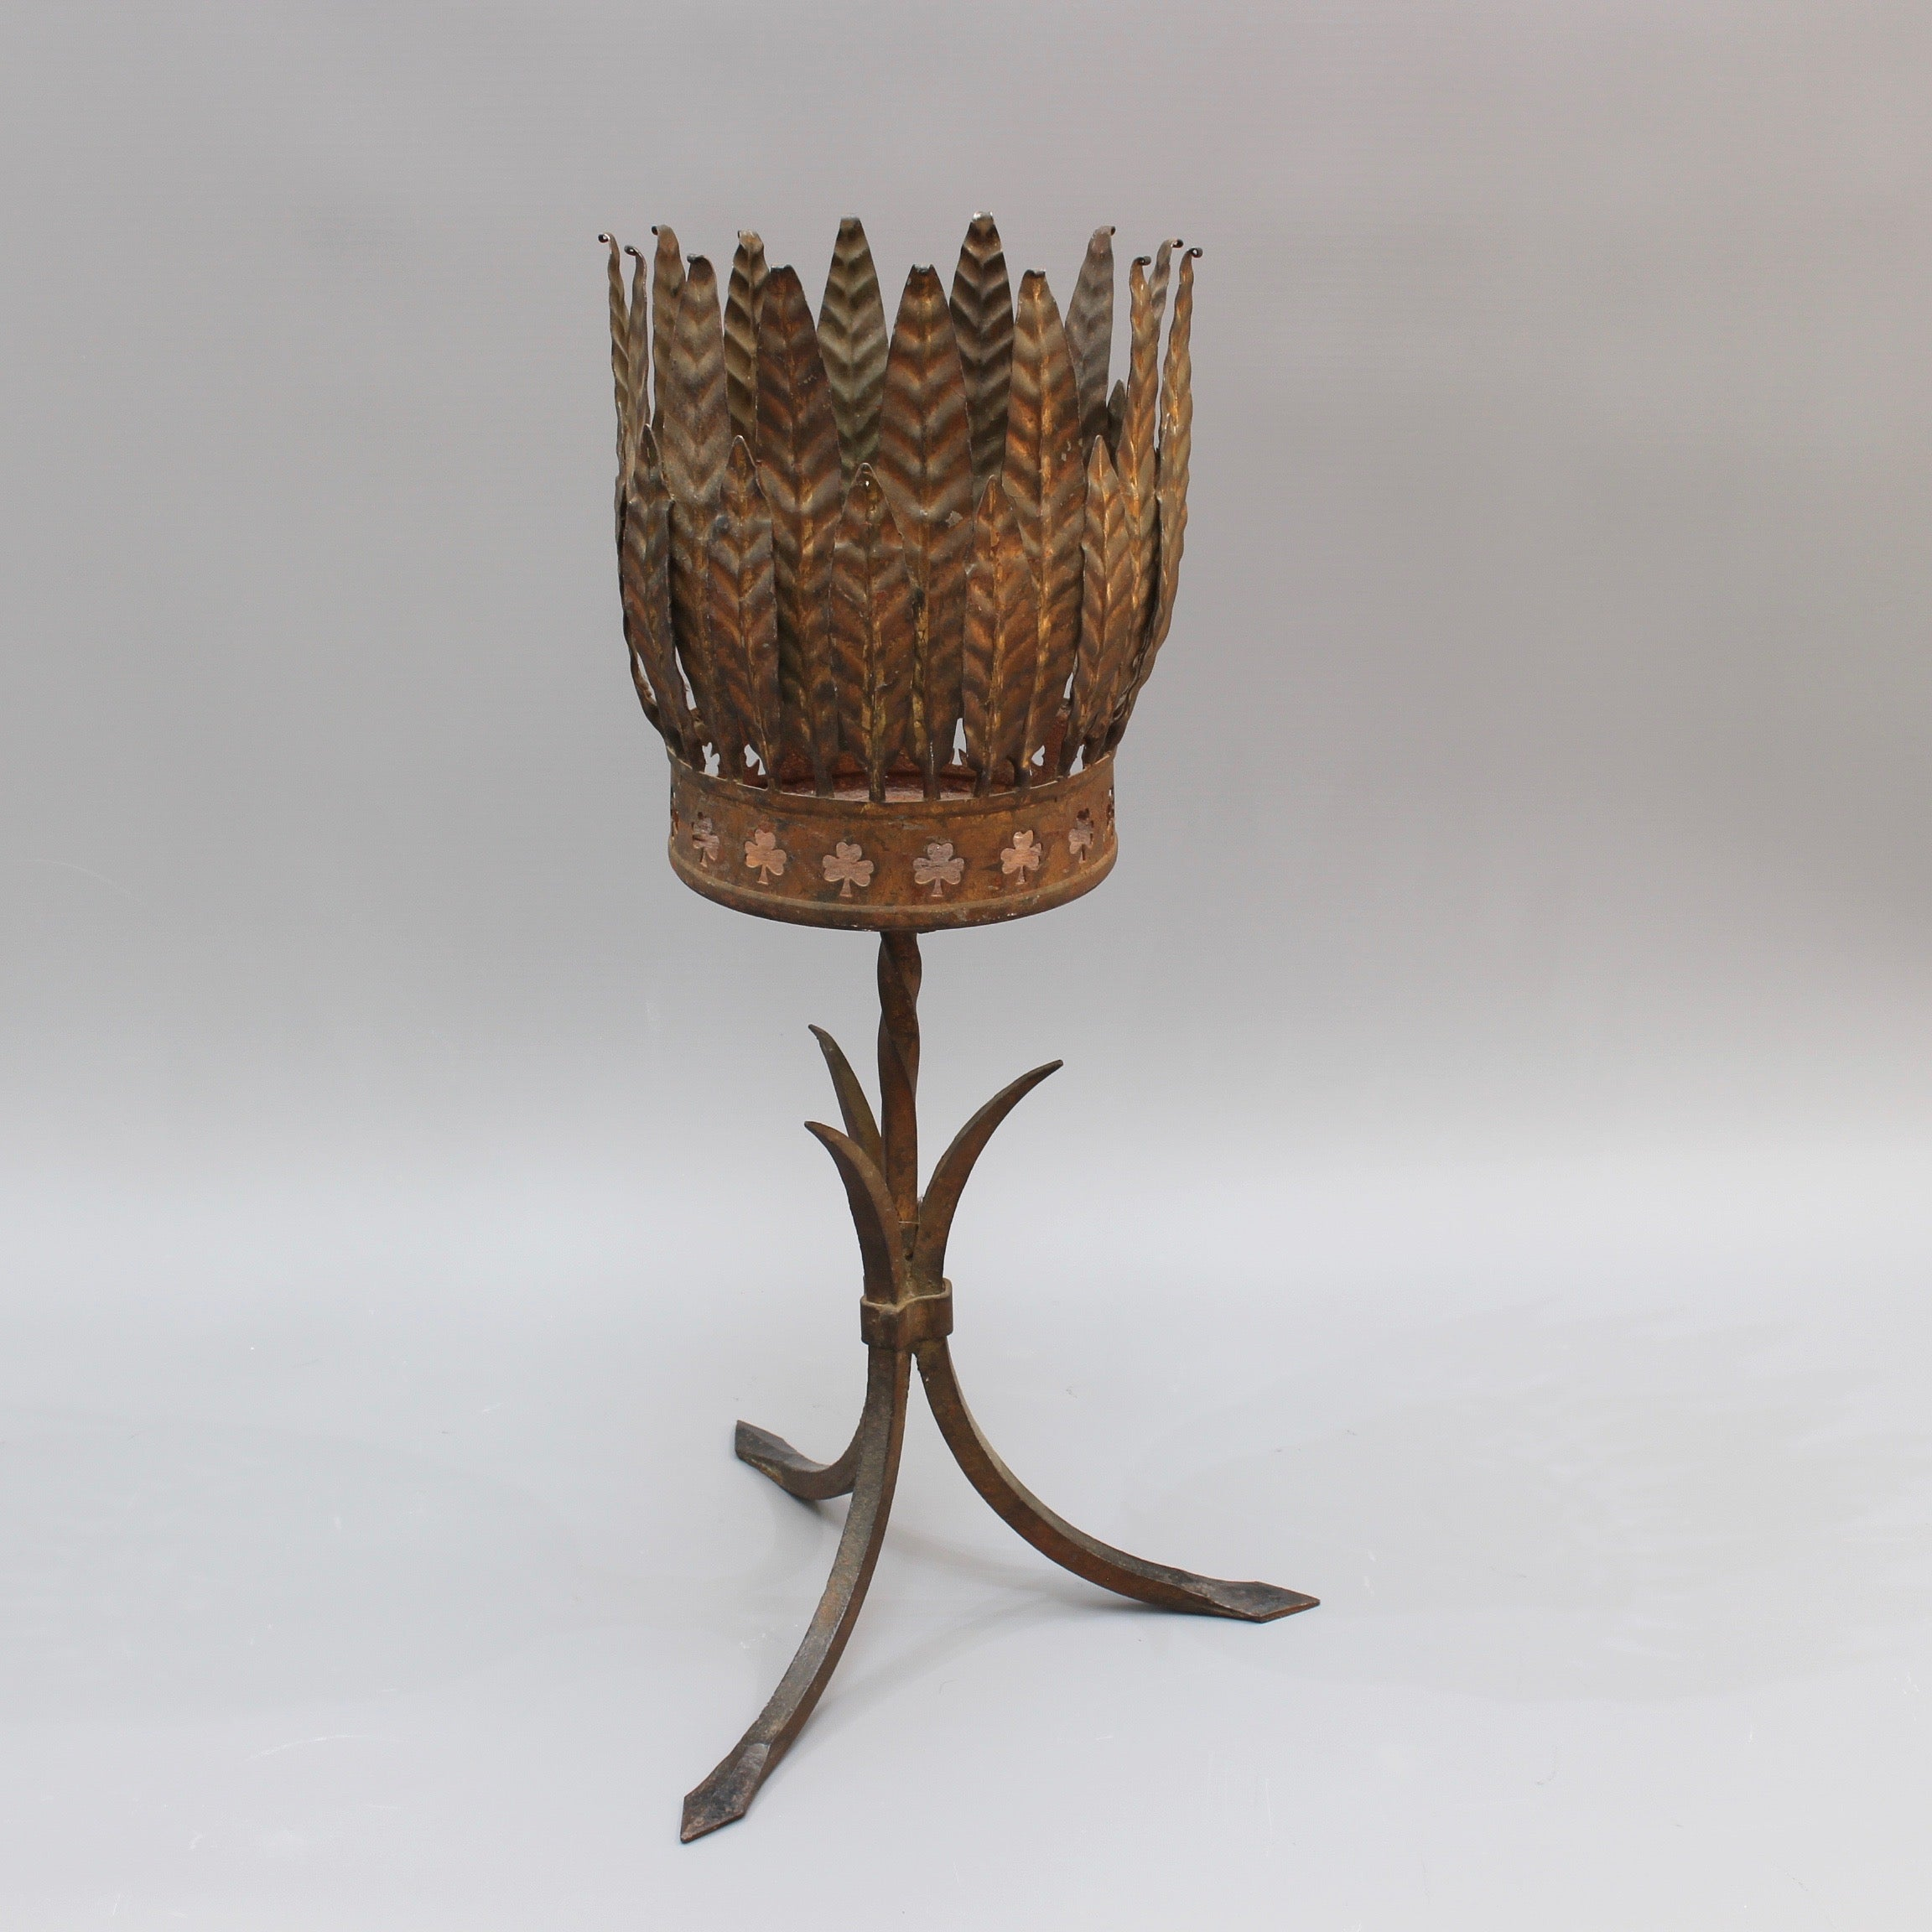 Spanish Gilt Metal Plant Stand (c. 1950s)